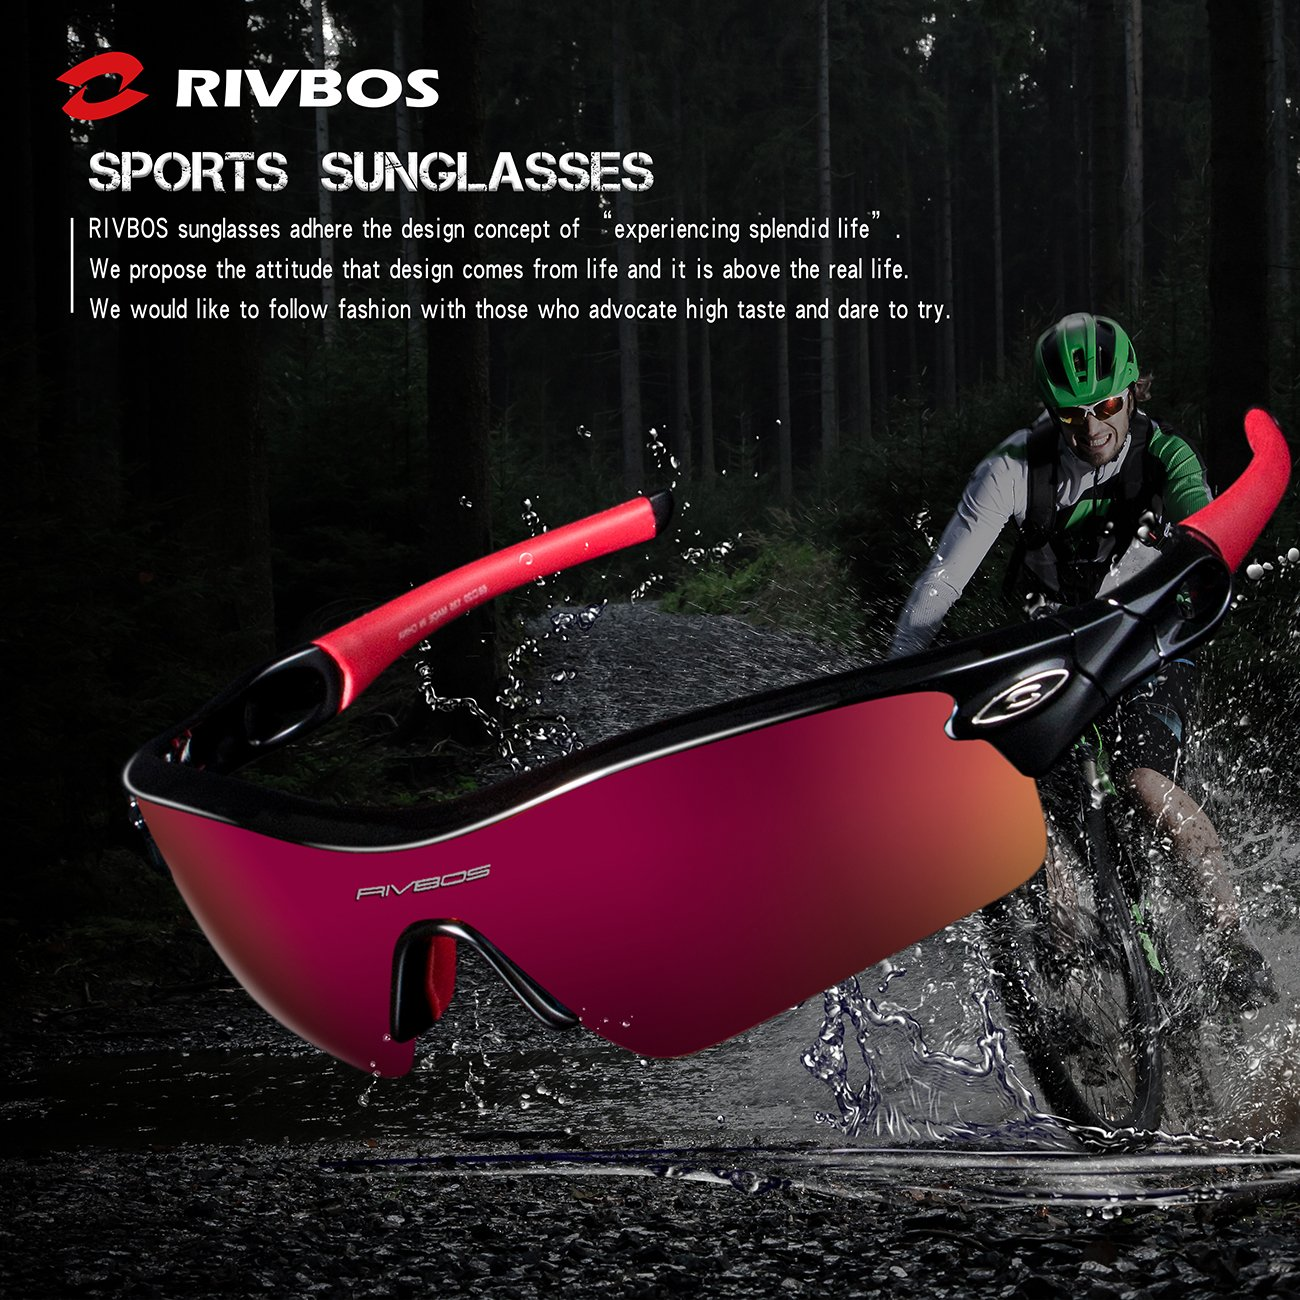 856aa444c8 RIVBOS 805 Polarized Sports Sunglasses Glasses with 5 Set Interchangeable  Lenses for Cycling (TR Black Ice Red Lens)  Amazon.com.au  Sports